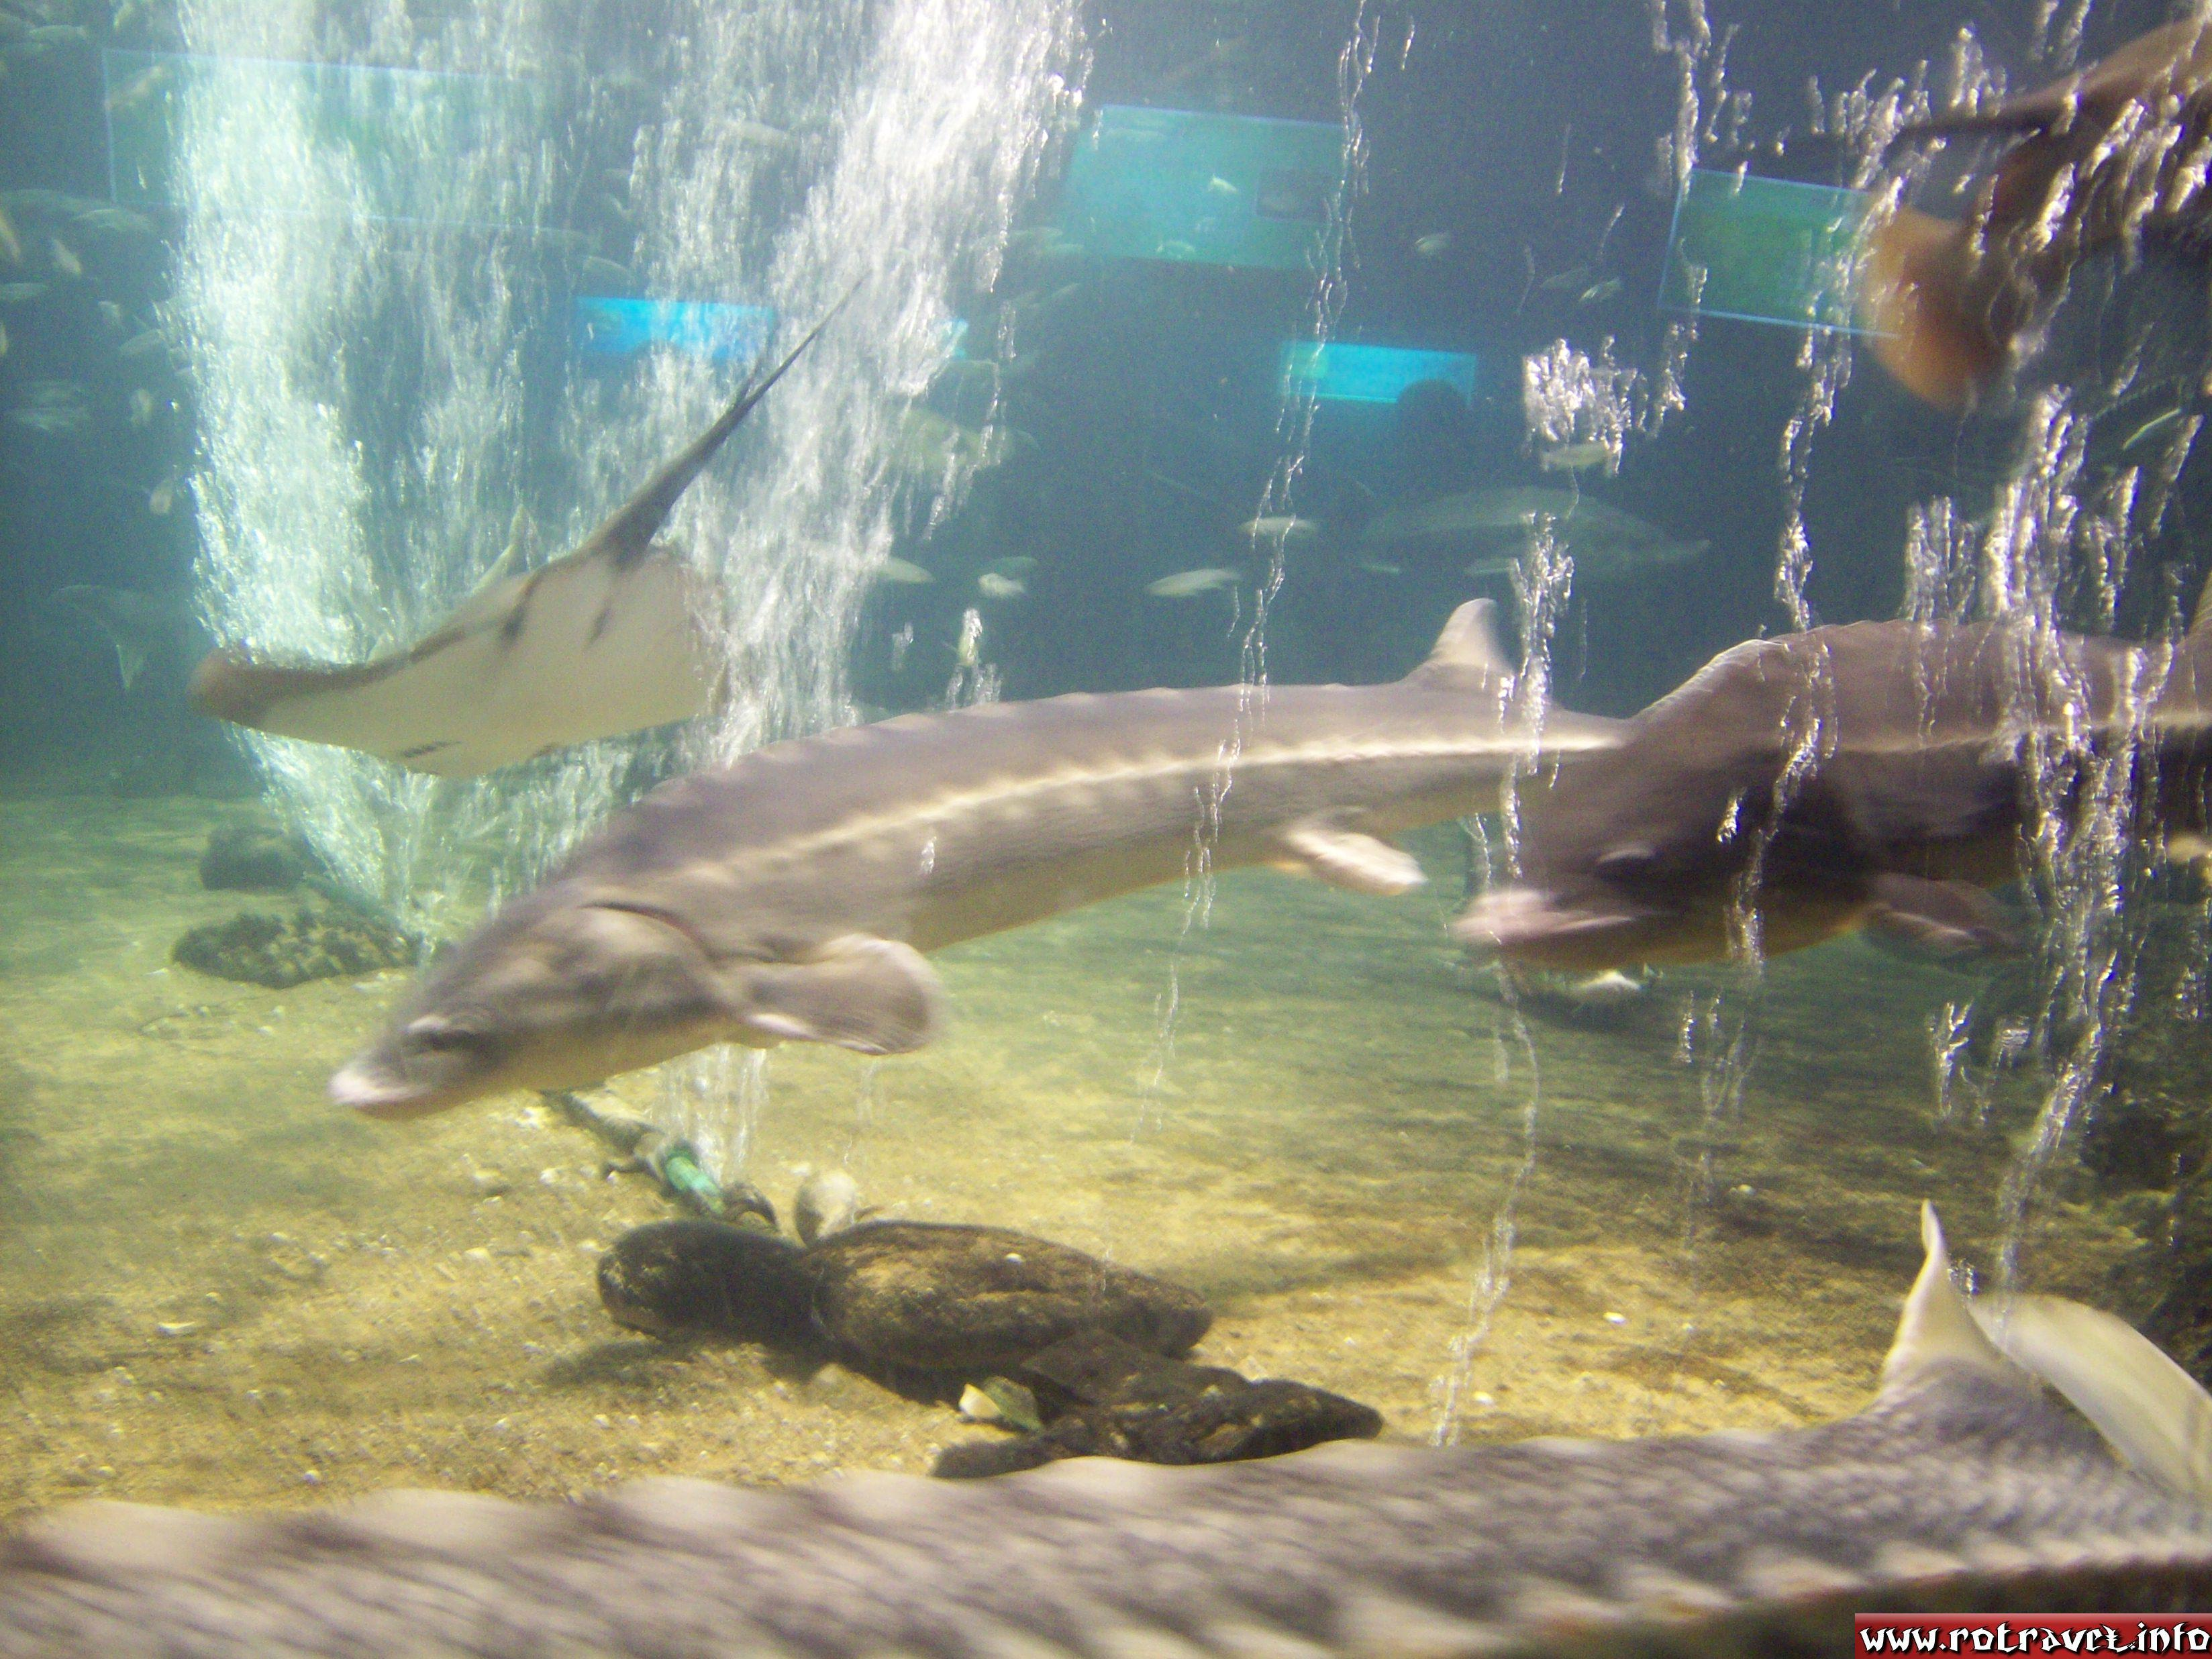 Beluga or European sturgeon (Huso huso)